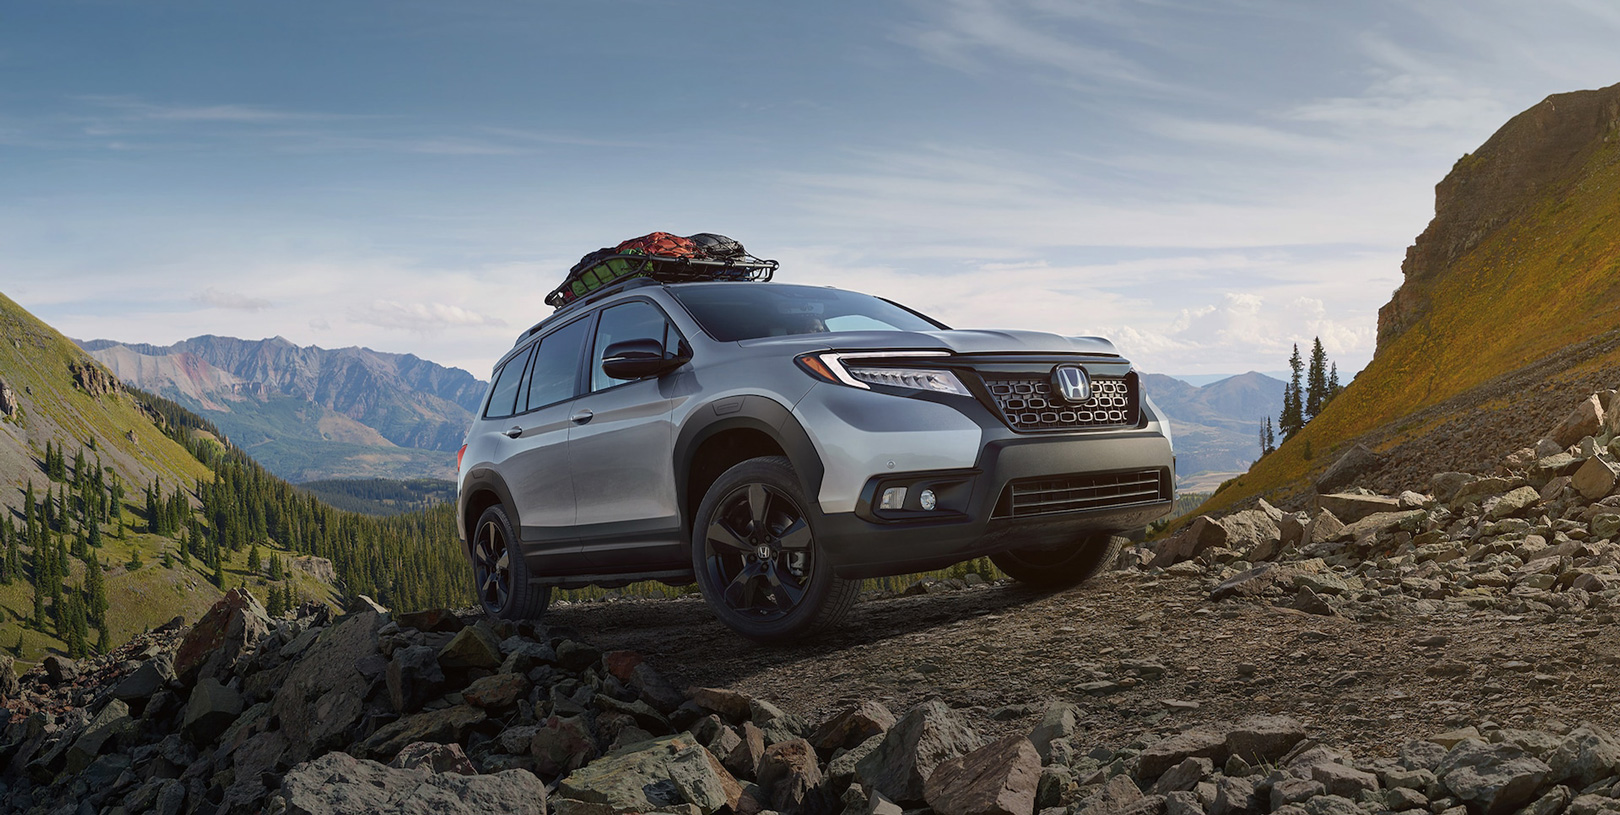 2020 Honda Passport Taking Turn Onto Road